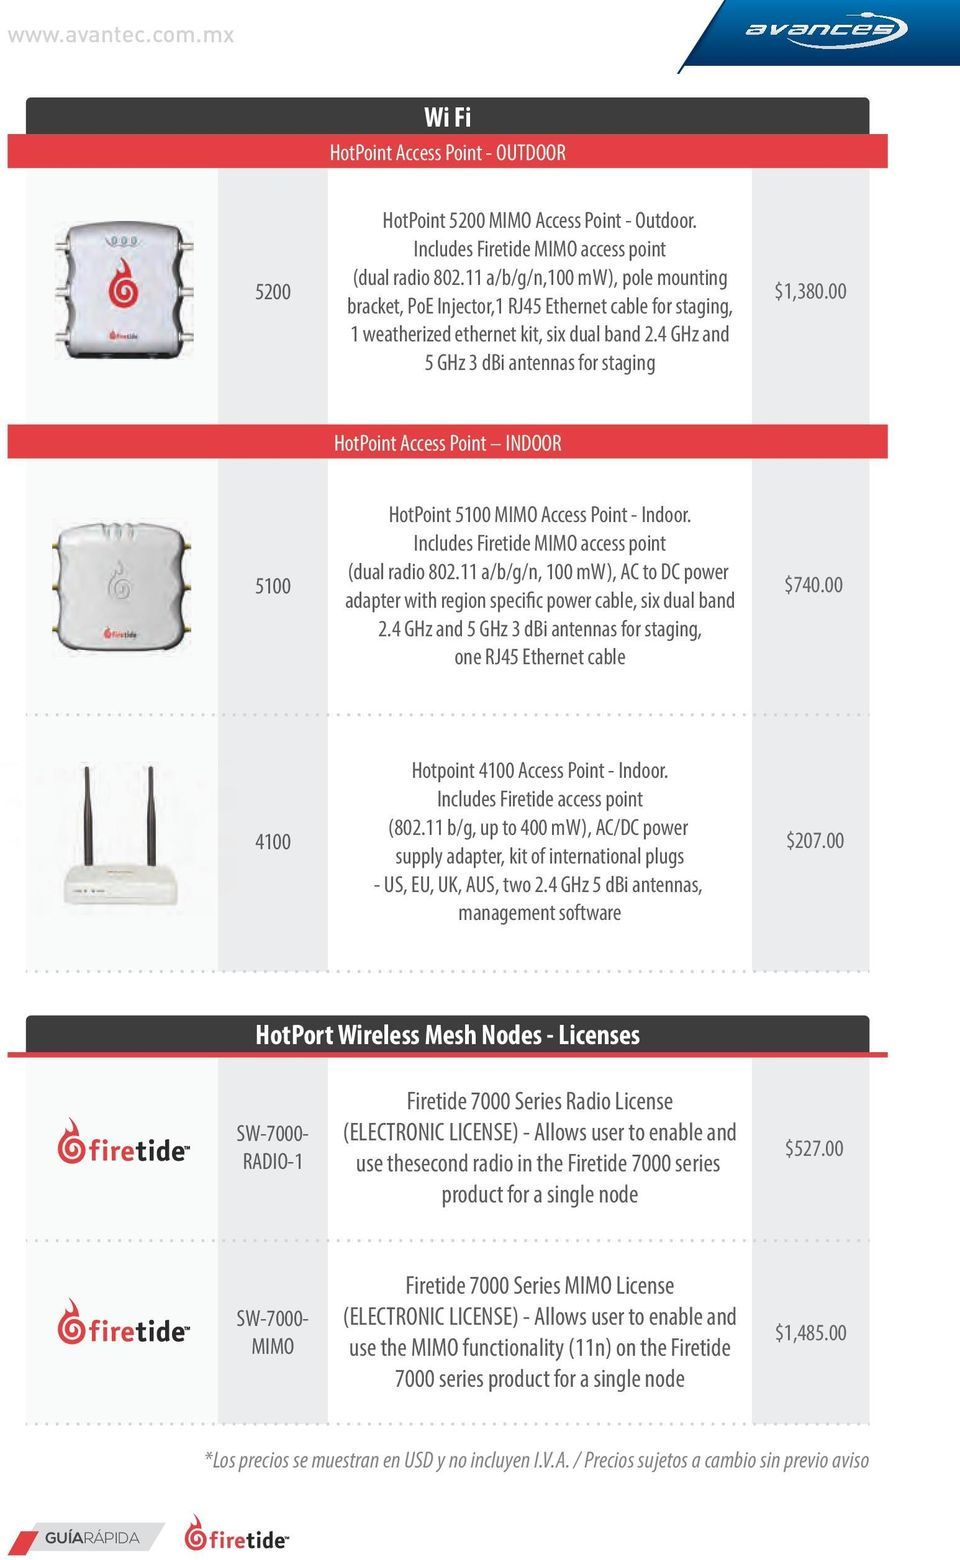 4 GHz and 5 GHz 3 dbi antennas for staging HotPoint Access Point INDOOR 5100 HotPoint 5100 MIMO Access Point - Indoor. Includes Firetide MIMO access point (dual radio 802.